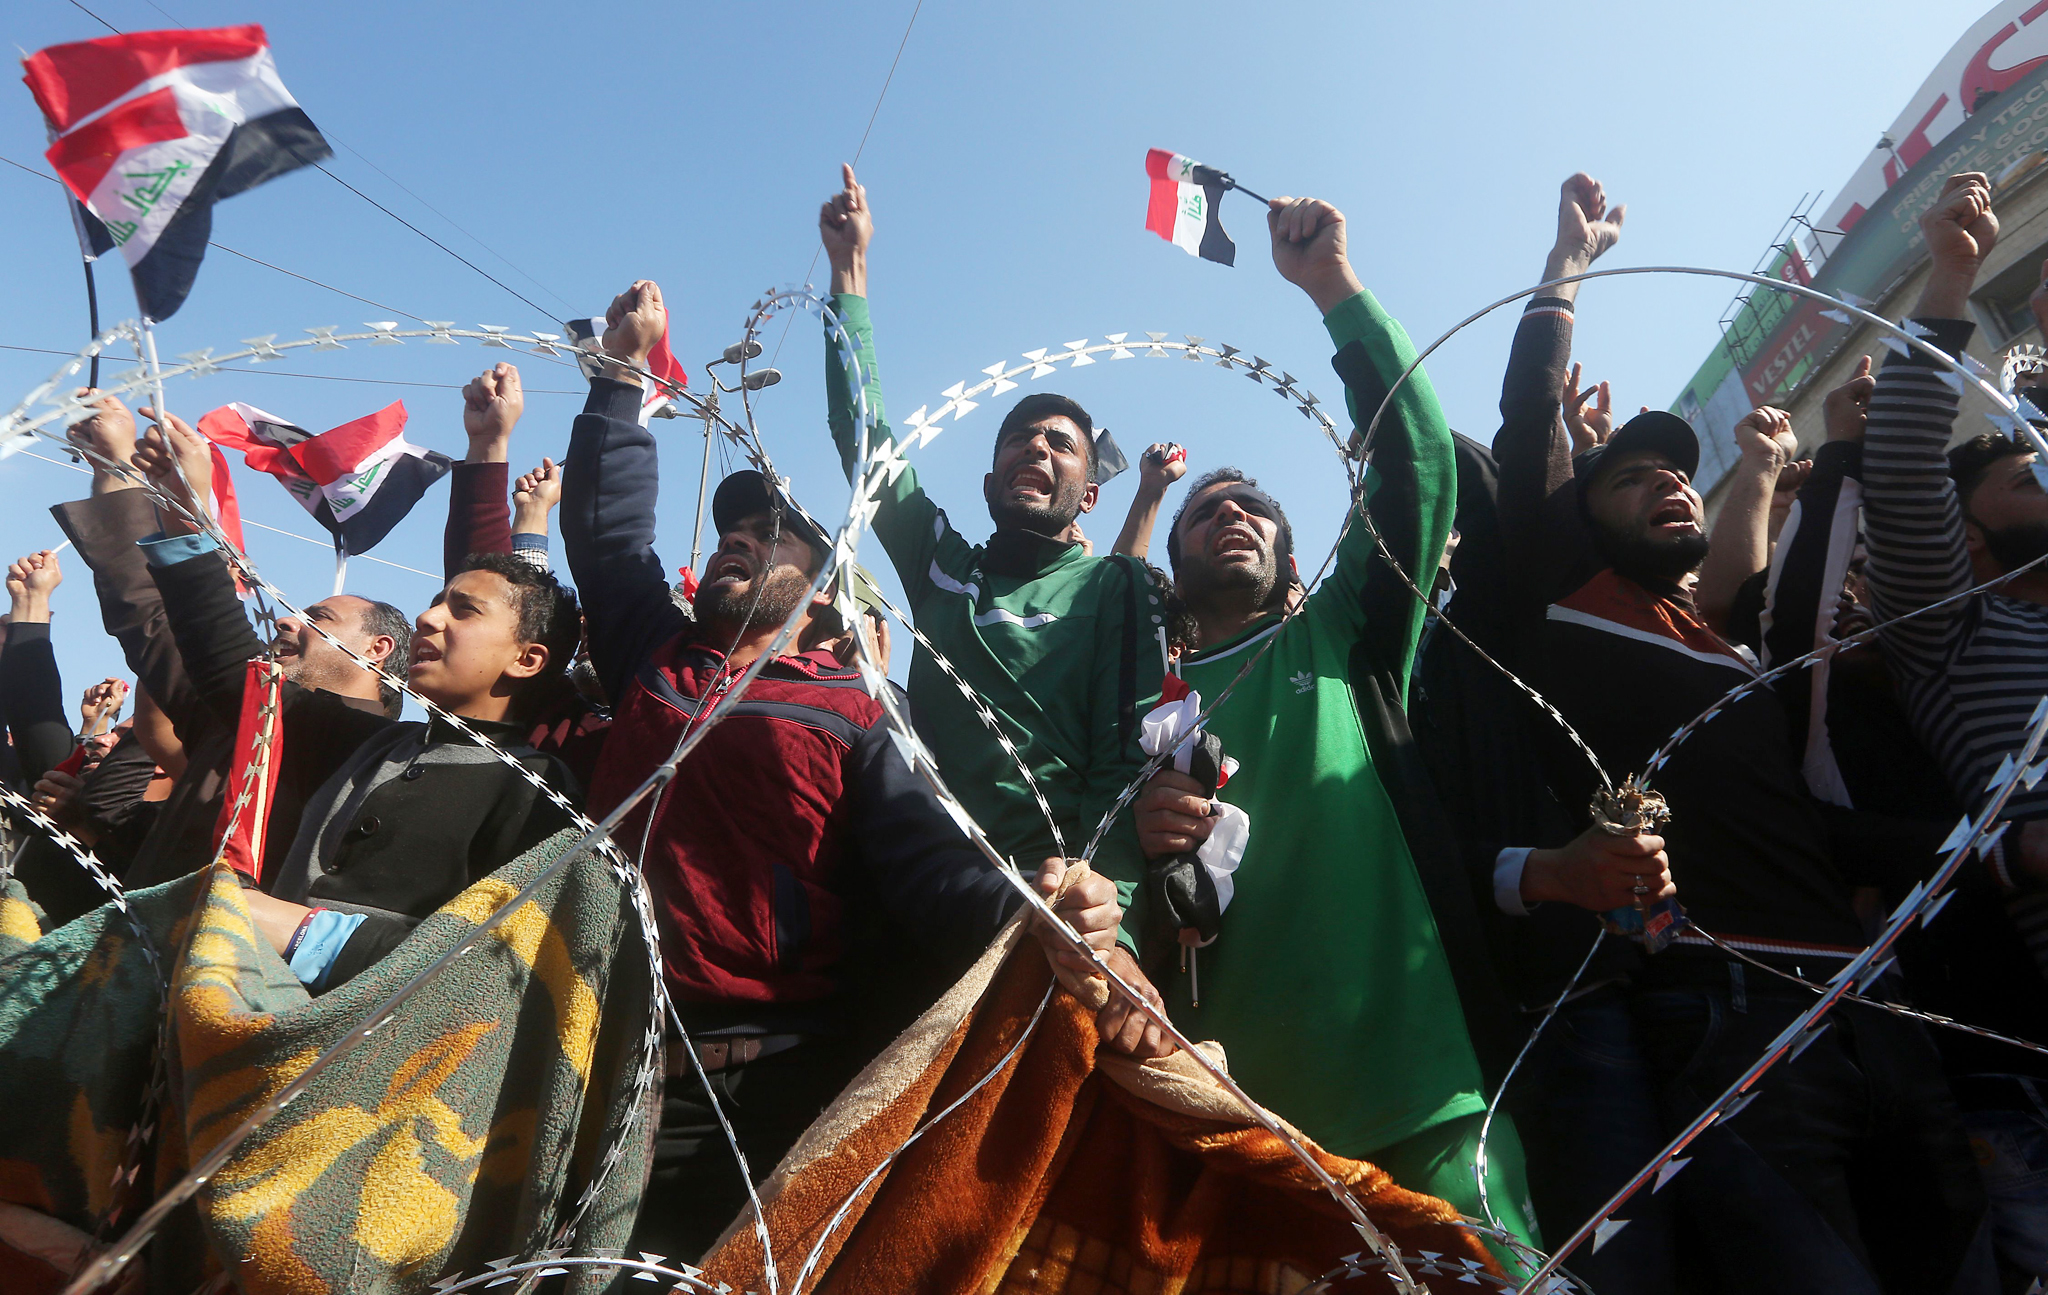 Iraqi supporters of Shiite cleric Moqtad...Iraqi supporters of Shiite cleric Moqtada al-Sadr wave the national flag as they listen to his speech during a demonstration in Baghdad's Tahrir Square on February 26, 2016, calling for governmental reform and elimination of corruption. / AFP / AHMAD AL-RUBAYEAHMAD AL-RUBAYE/AFP/Getty Images